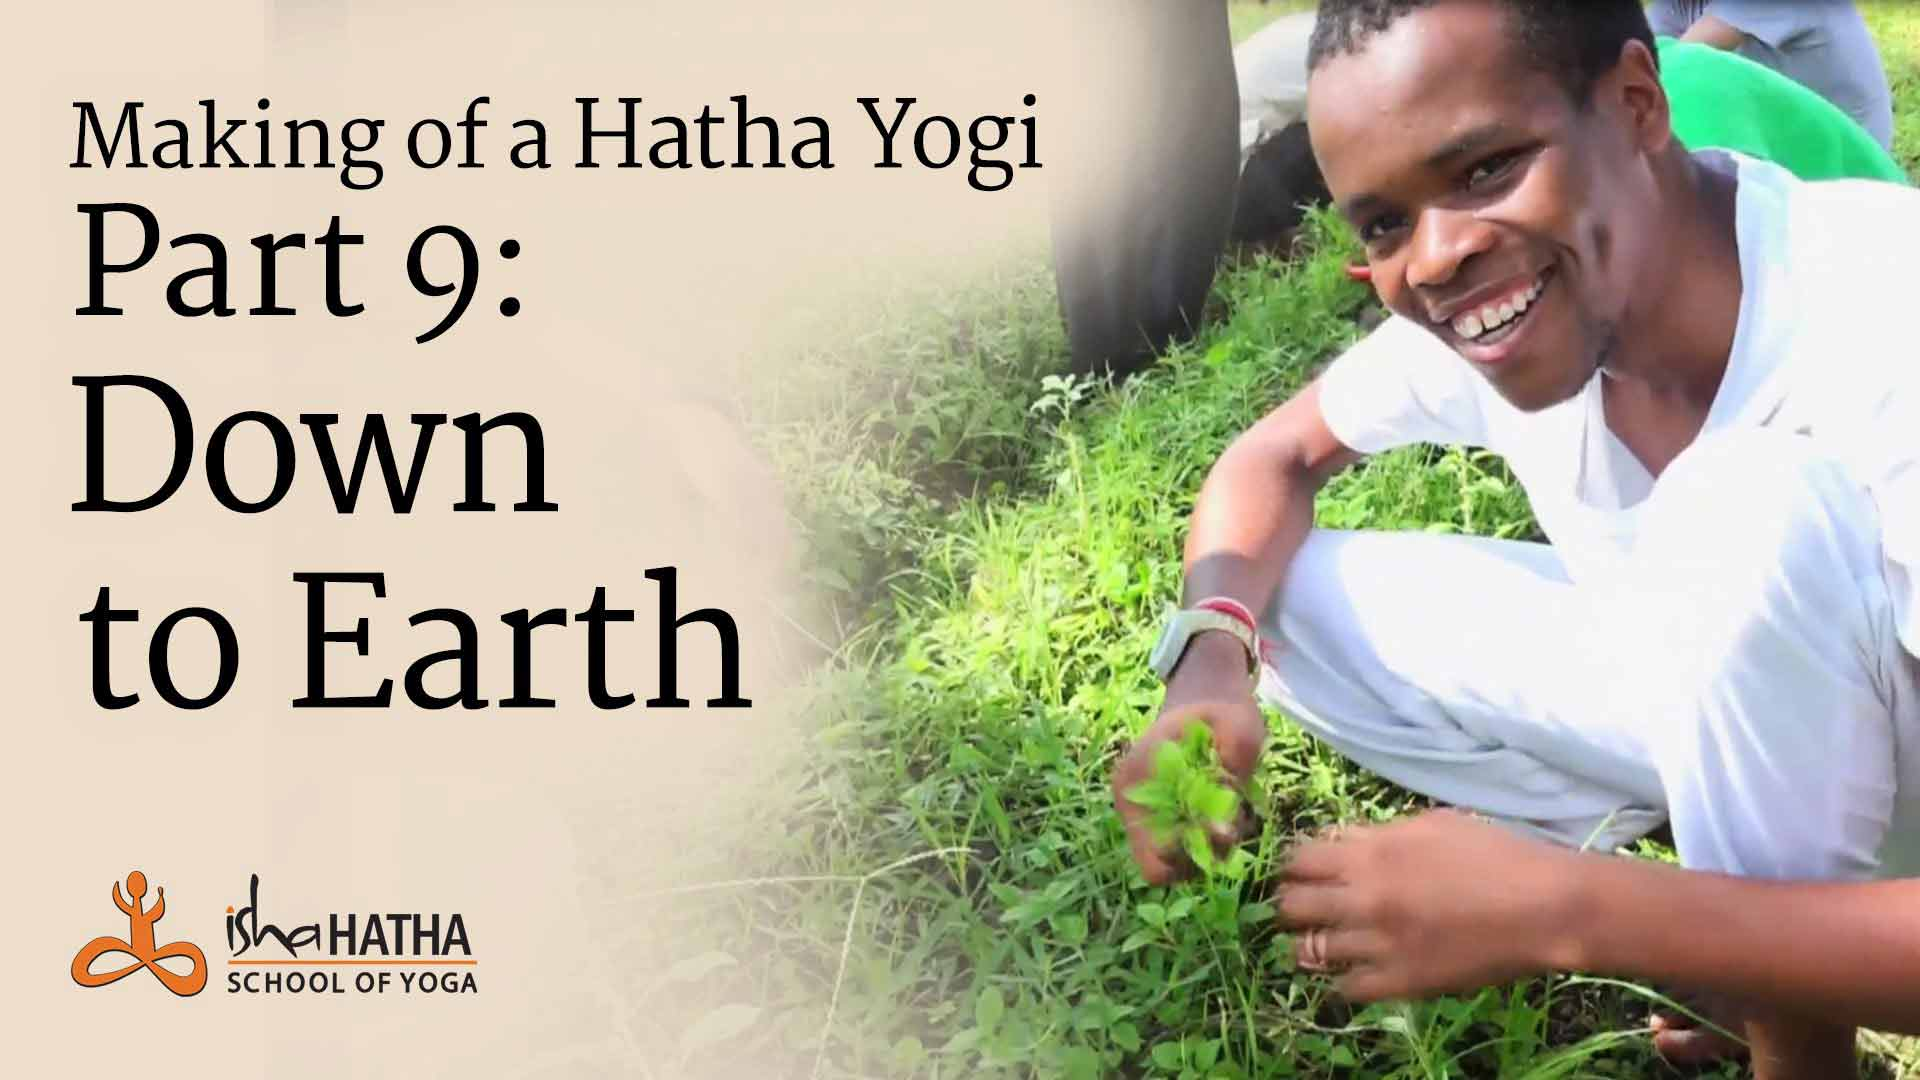 Making of a Hatha Yogi - Part 9: Down to Earth